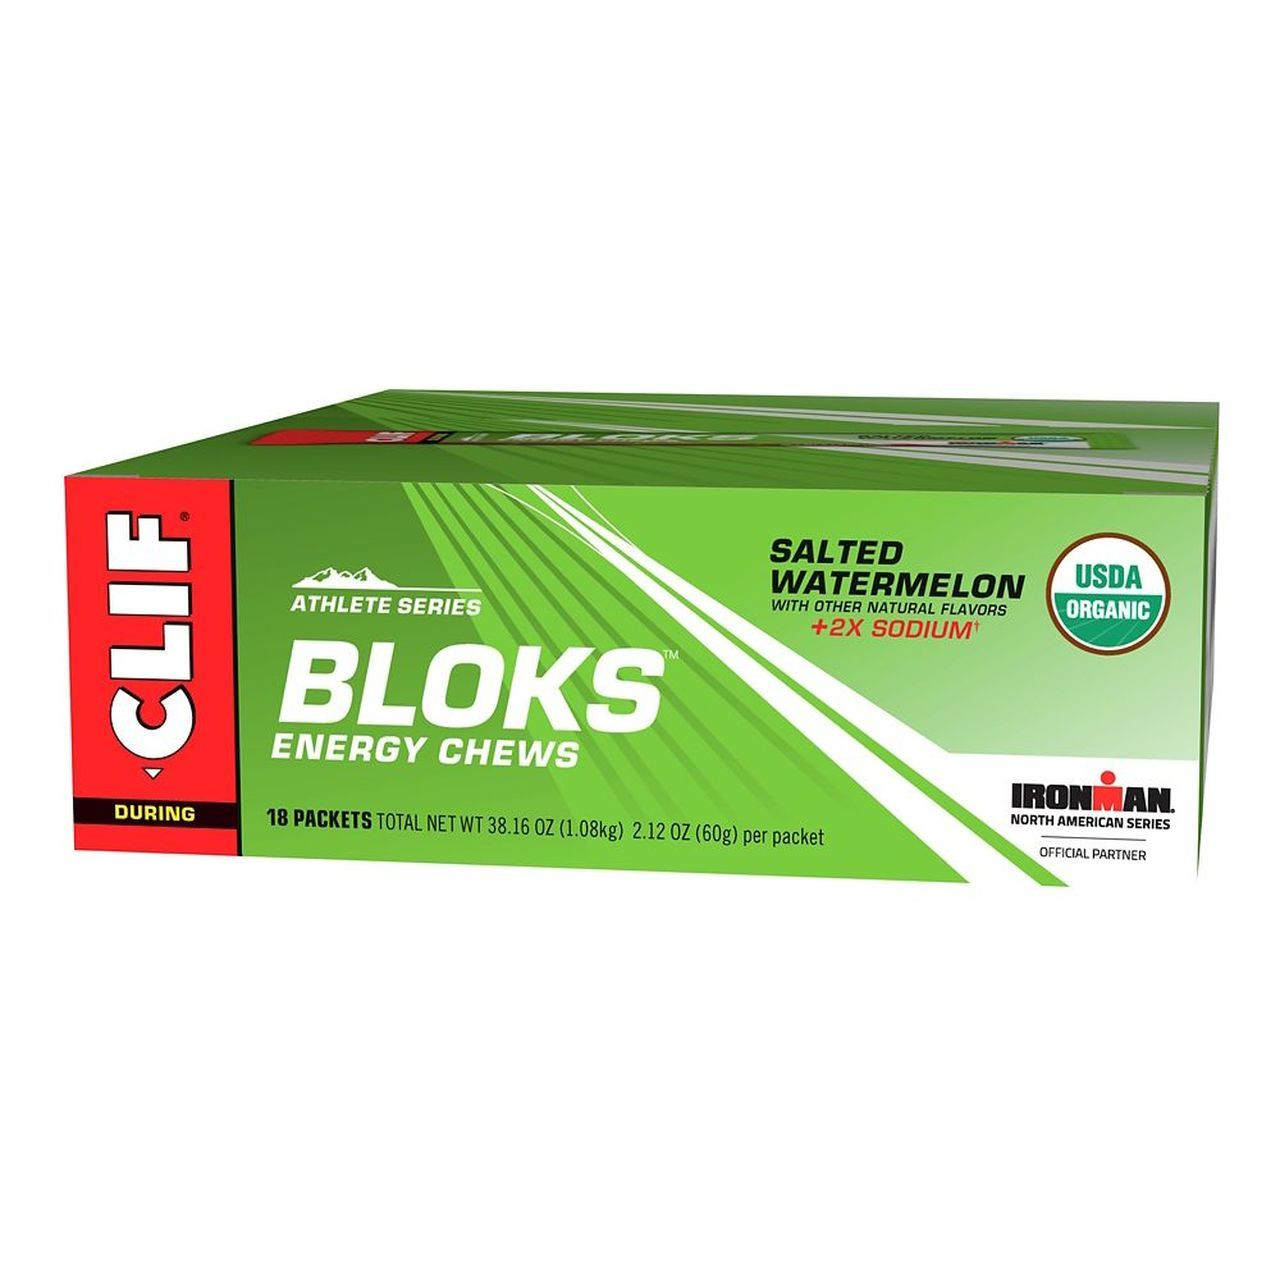 CLIF BLOKS Energy Chews CLIF Salted Watermelon 2.12 Oz-18 Count